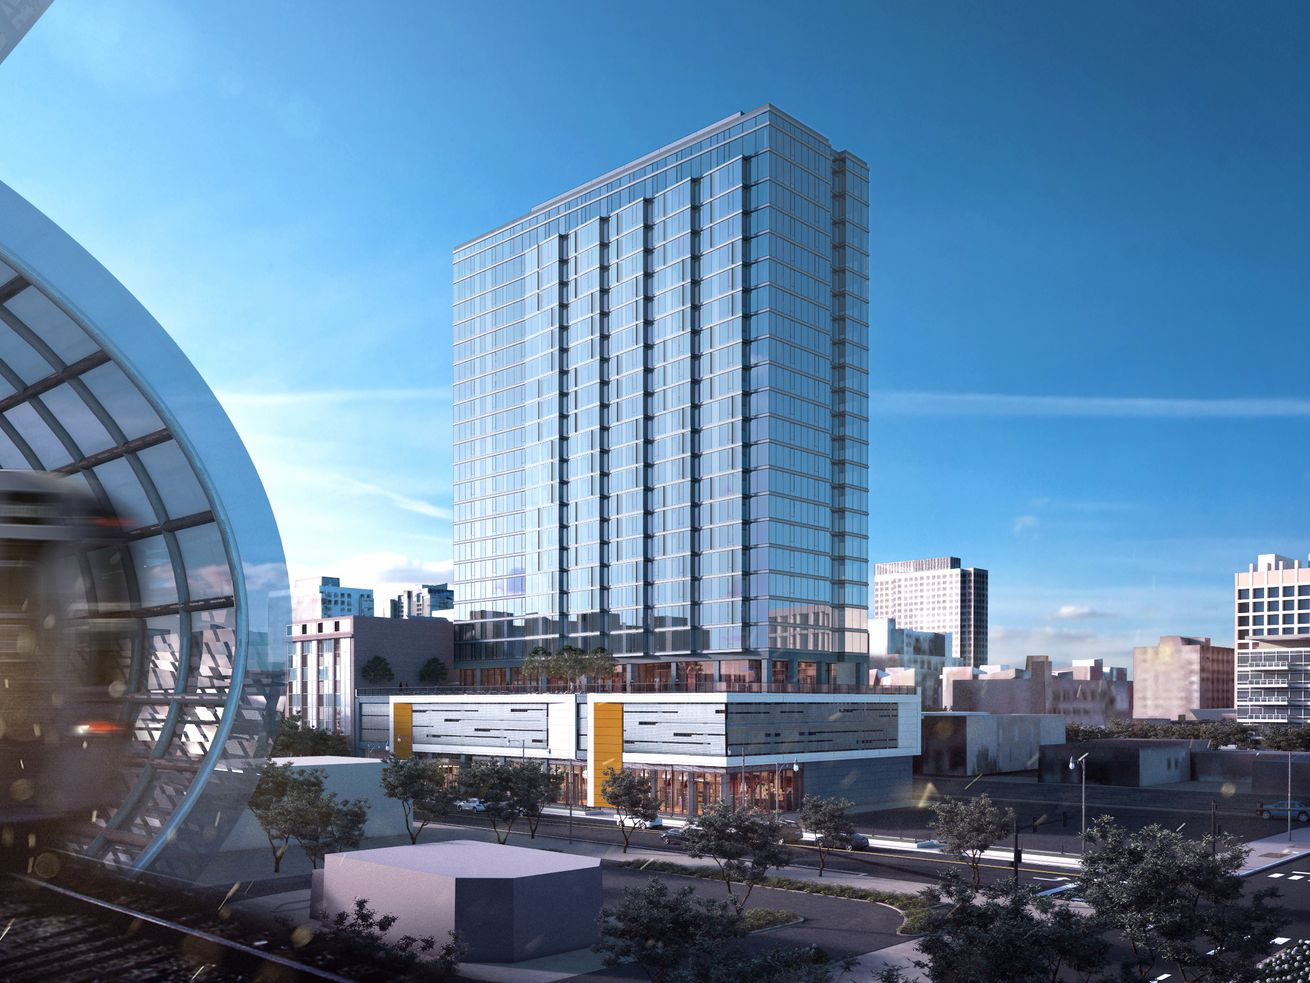 A rendering of 2111 S. Wabash Avenue as seen from the nearby Cermak-McCormick Place CTA Green Line station.